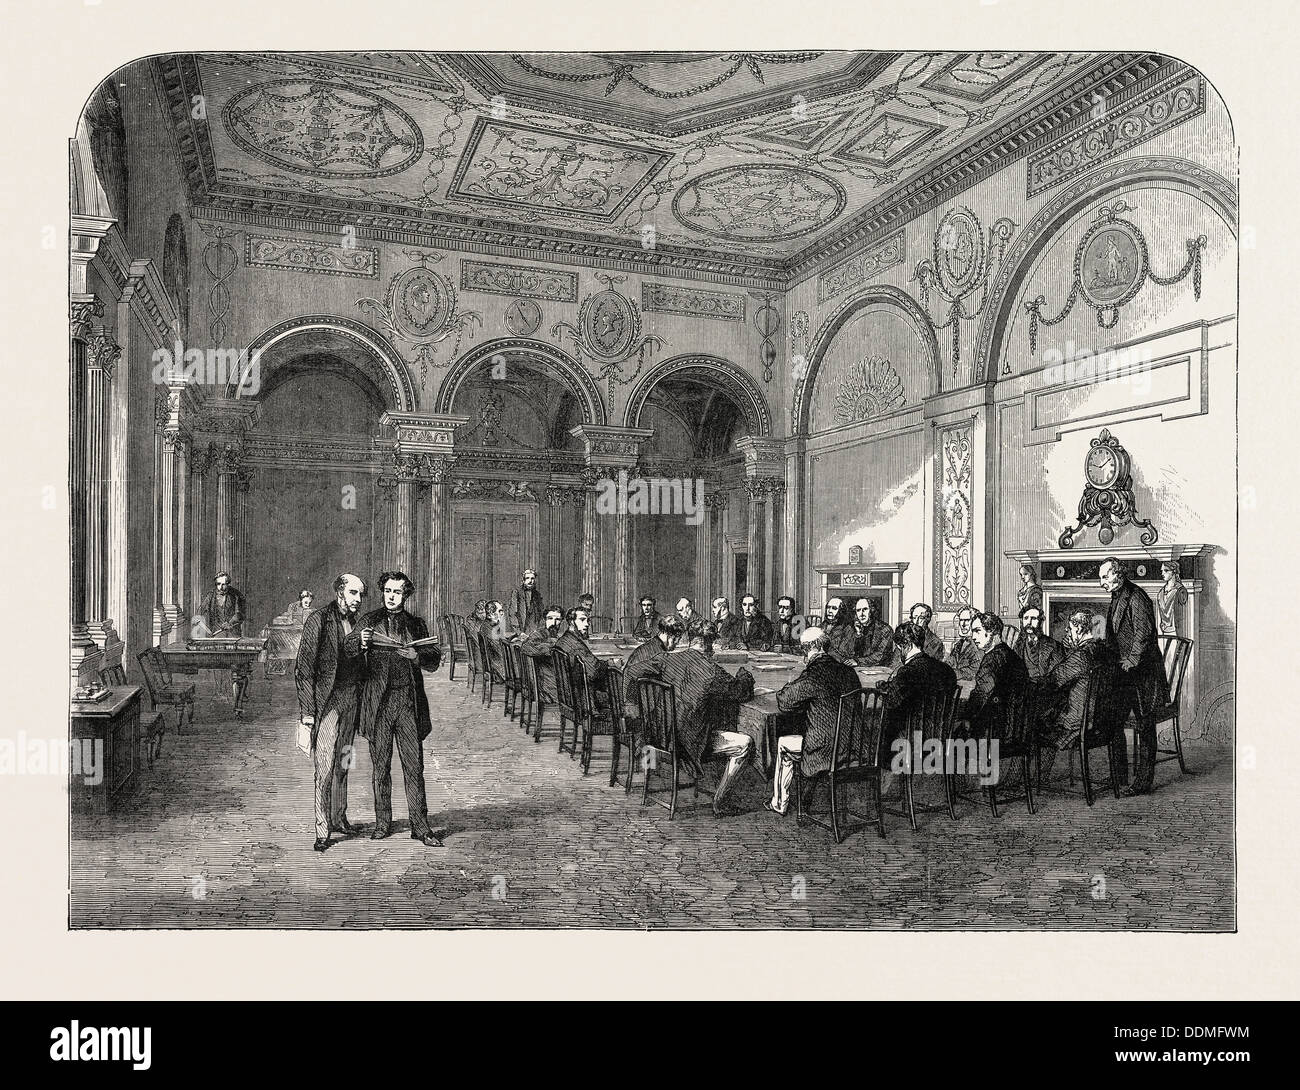 THE BANK OF ENGLAND: THE BANK PARLOUR, UK - Stock Image